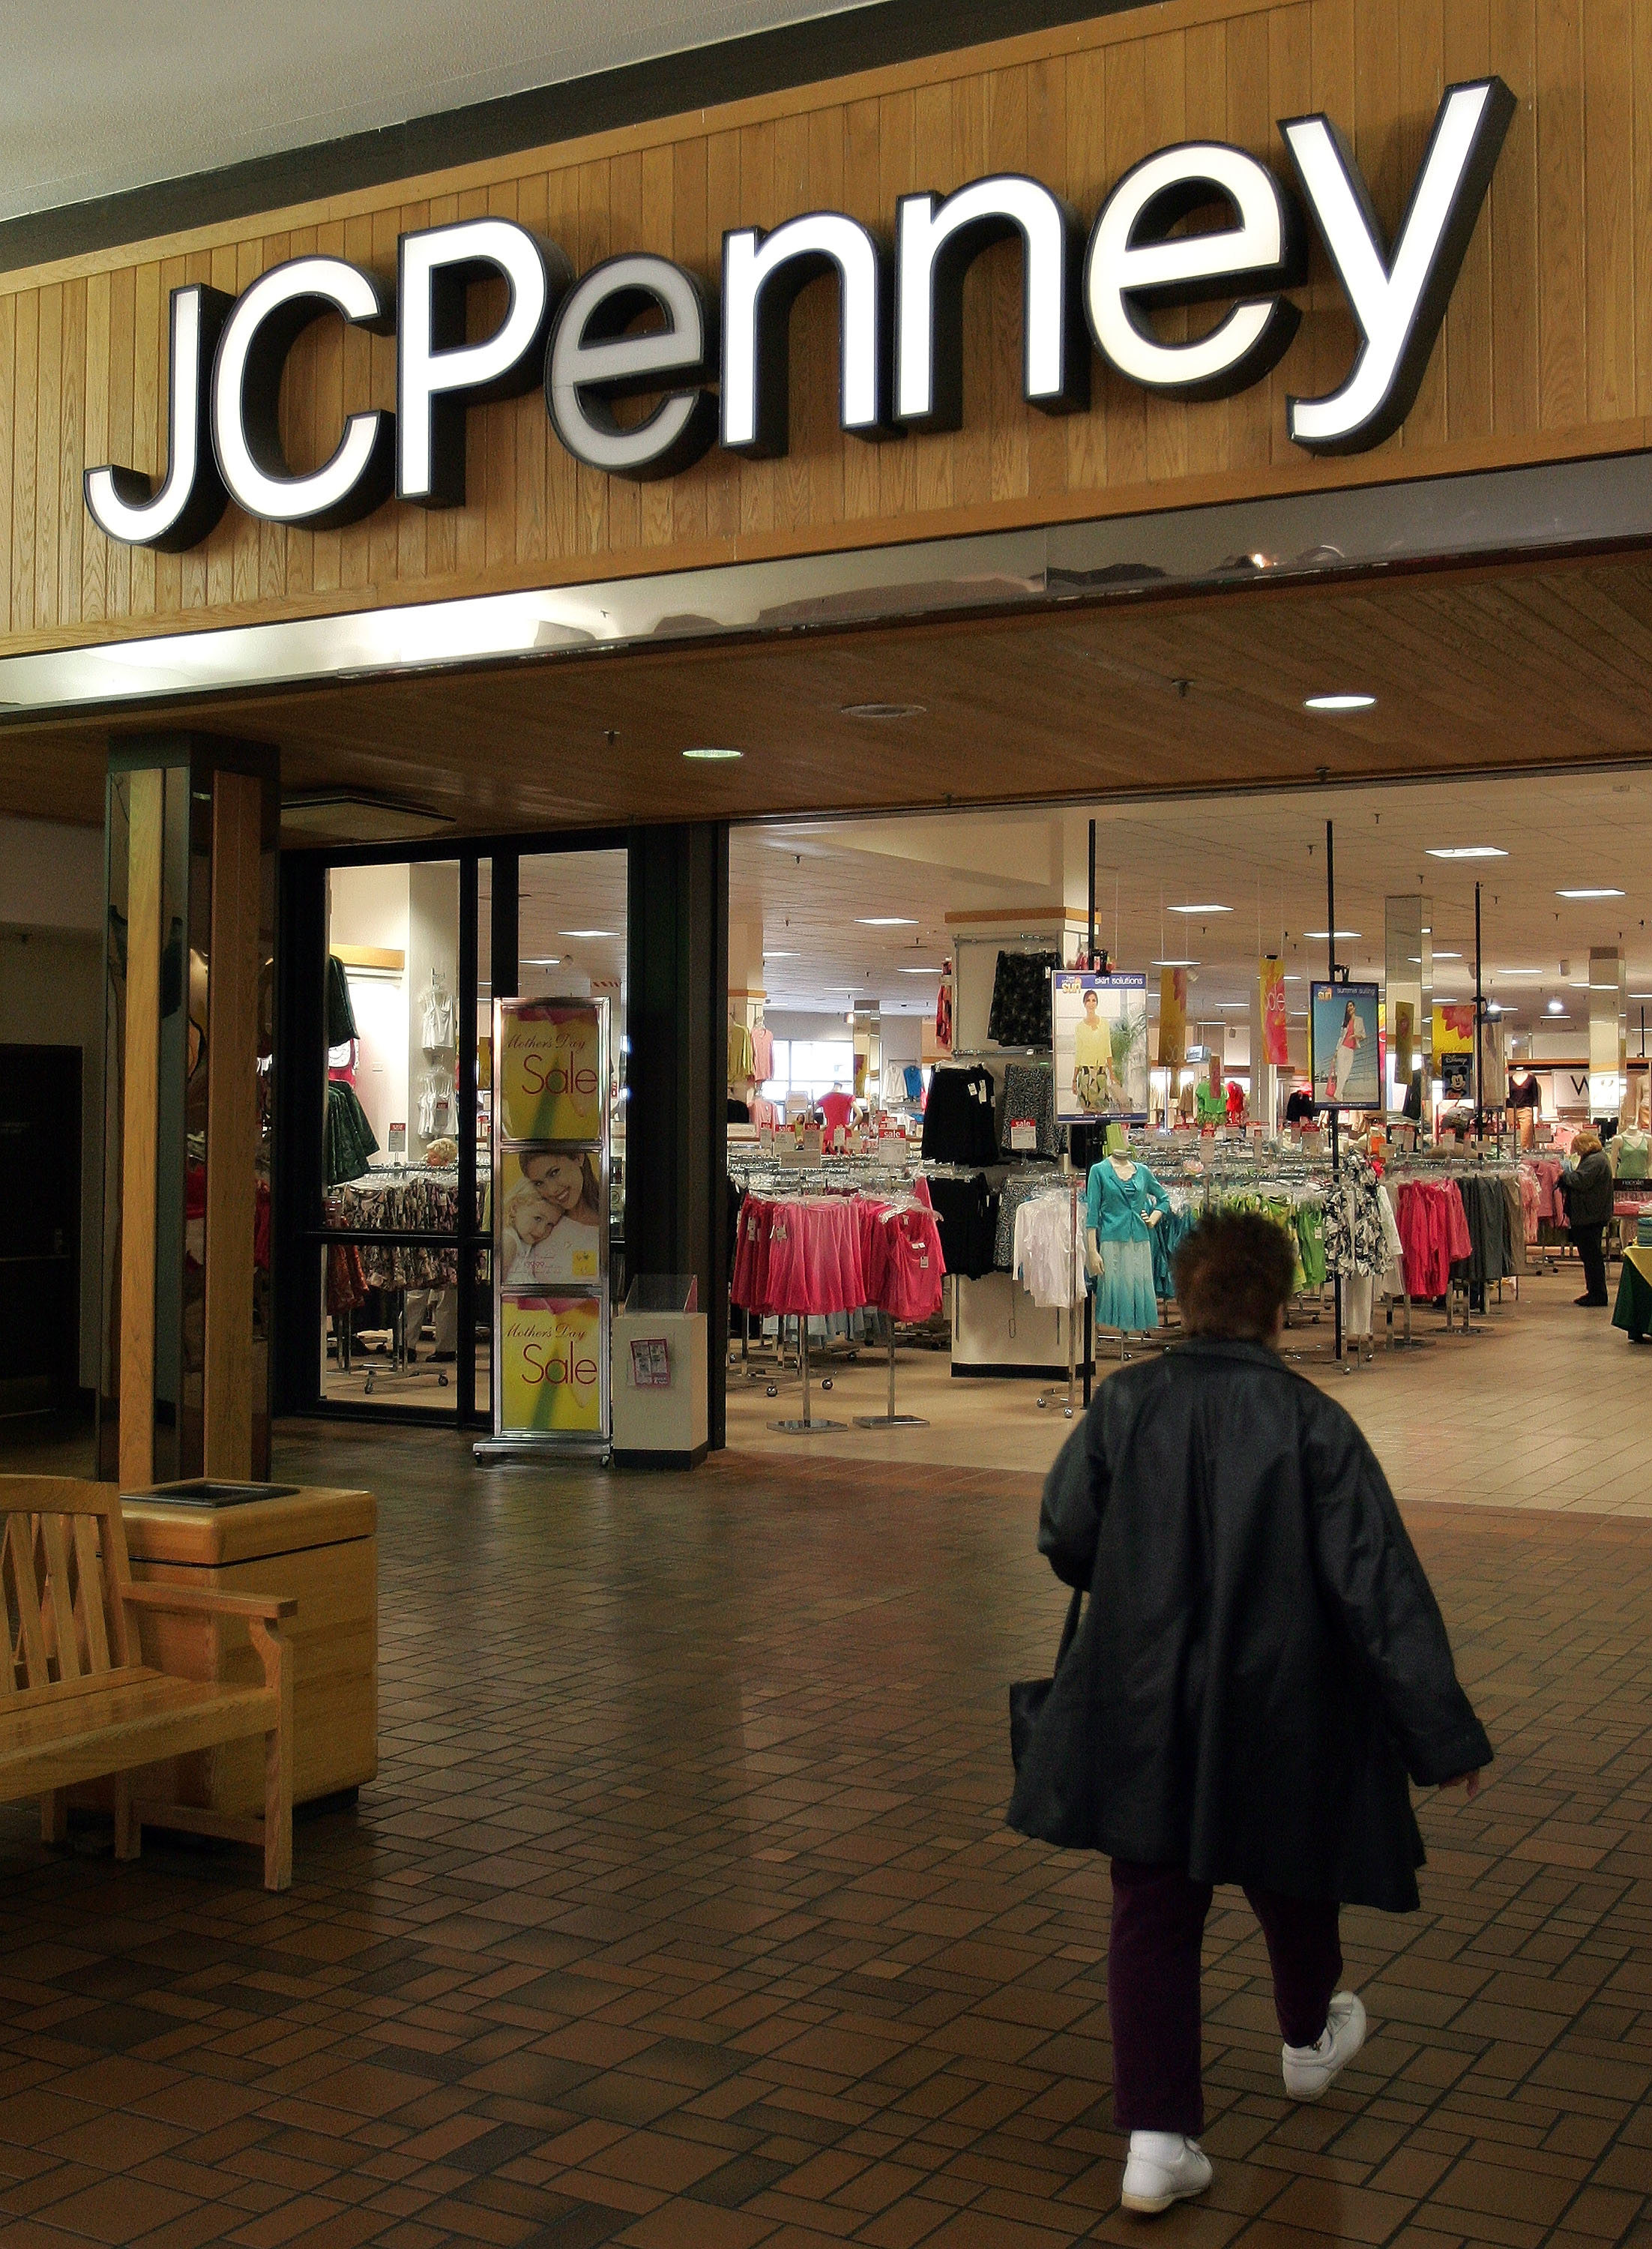 A woman walks toward the entrance of a JCPenney store May 3, 2005 in Niles, Illinois. (Photo by Tim Boyle/Getty Images)